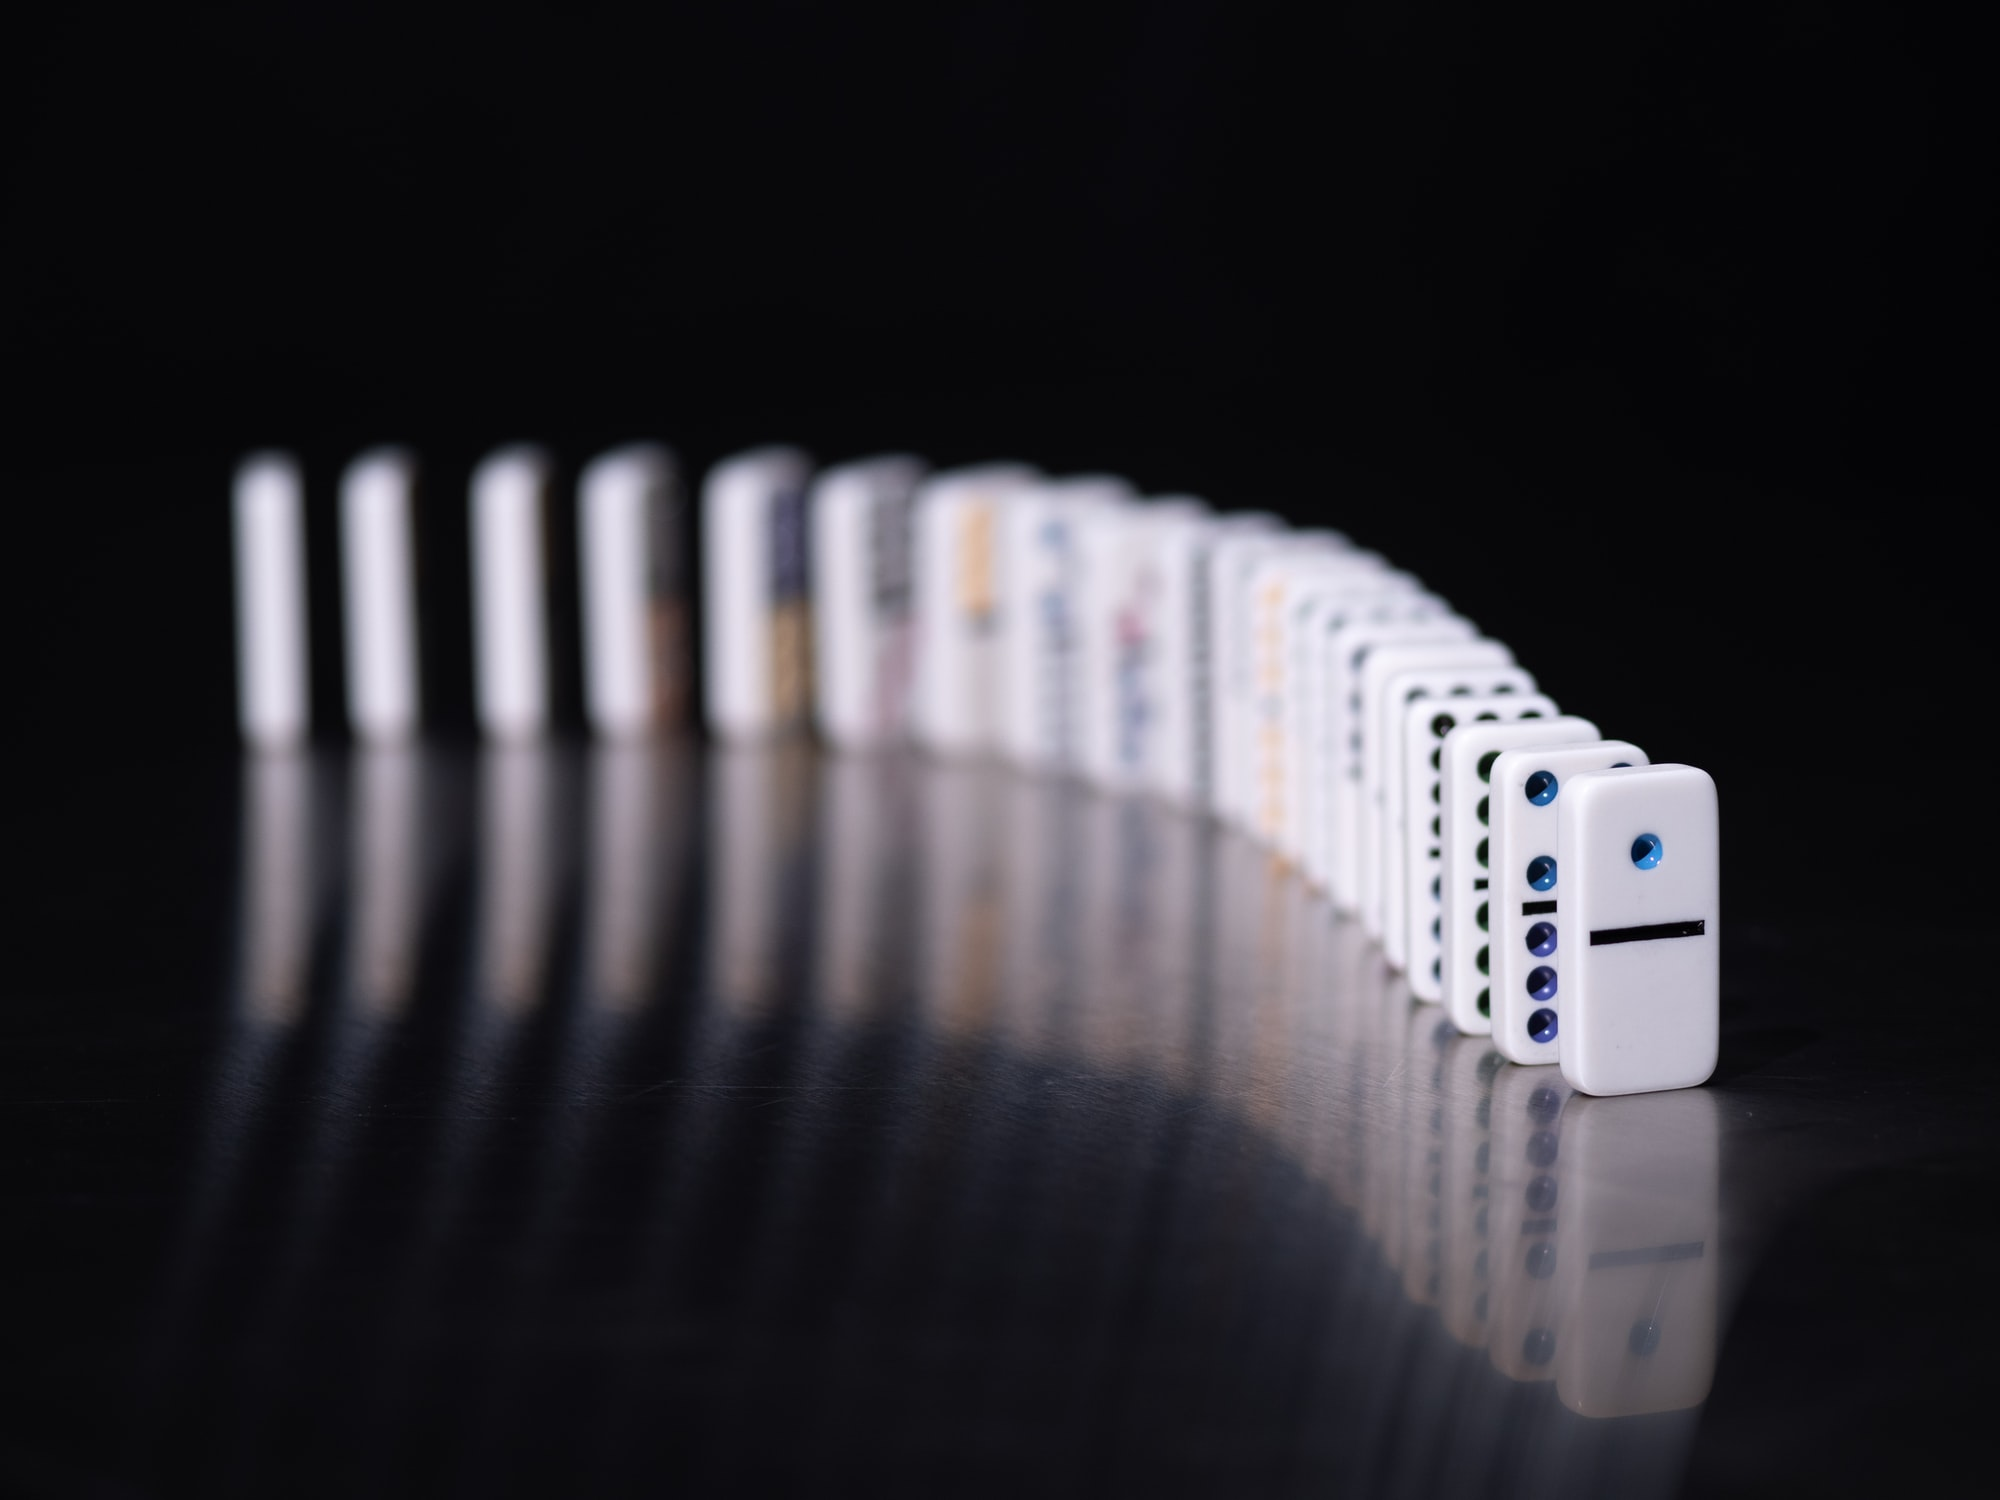 An array of dominos